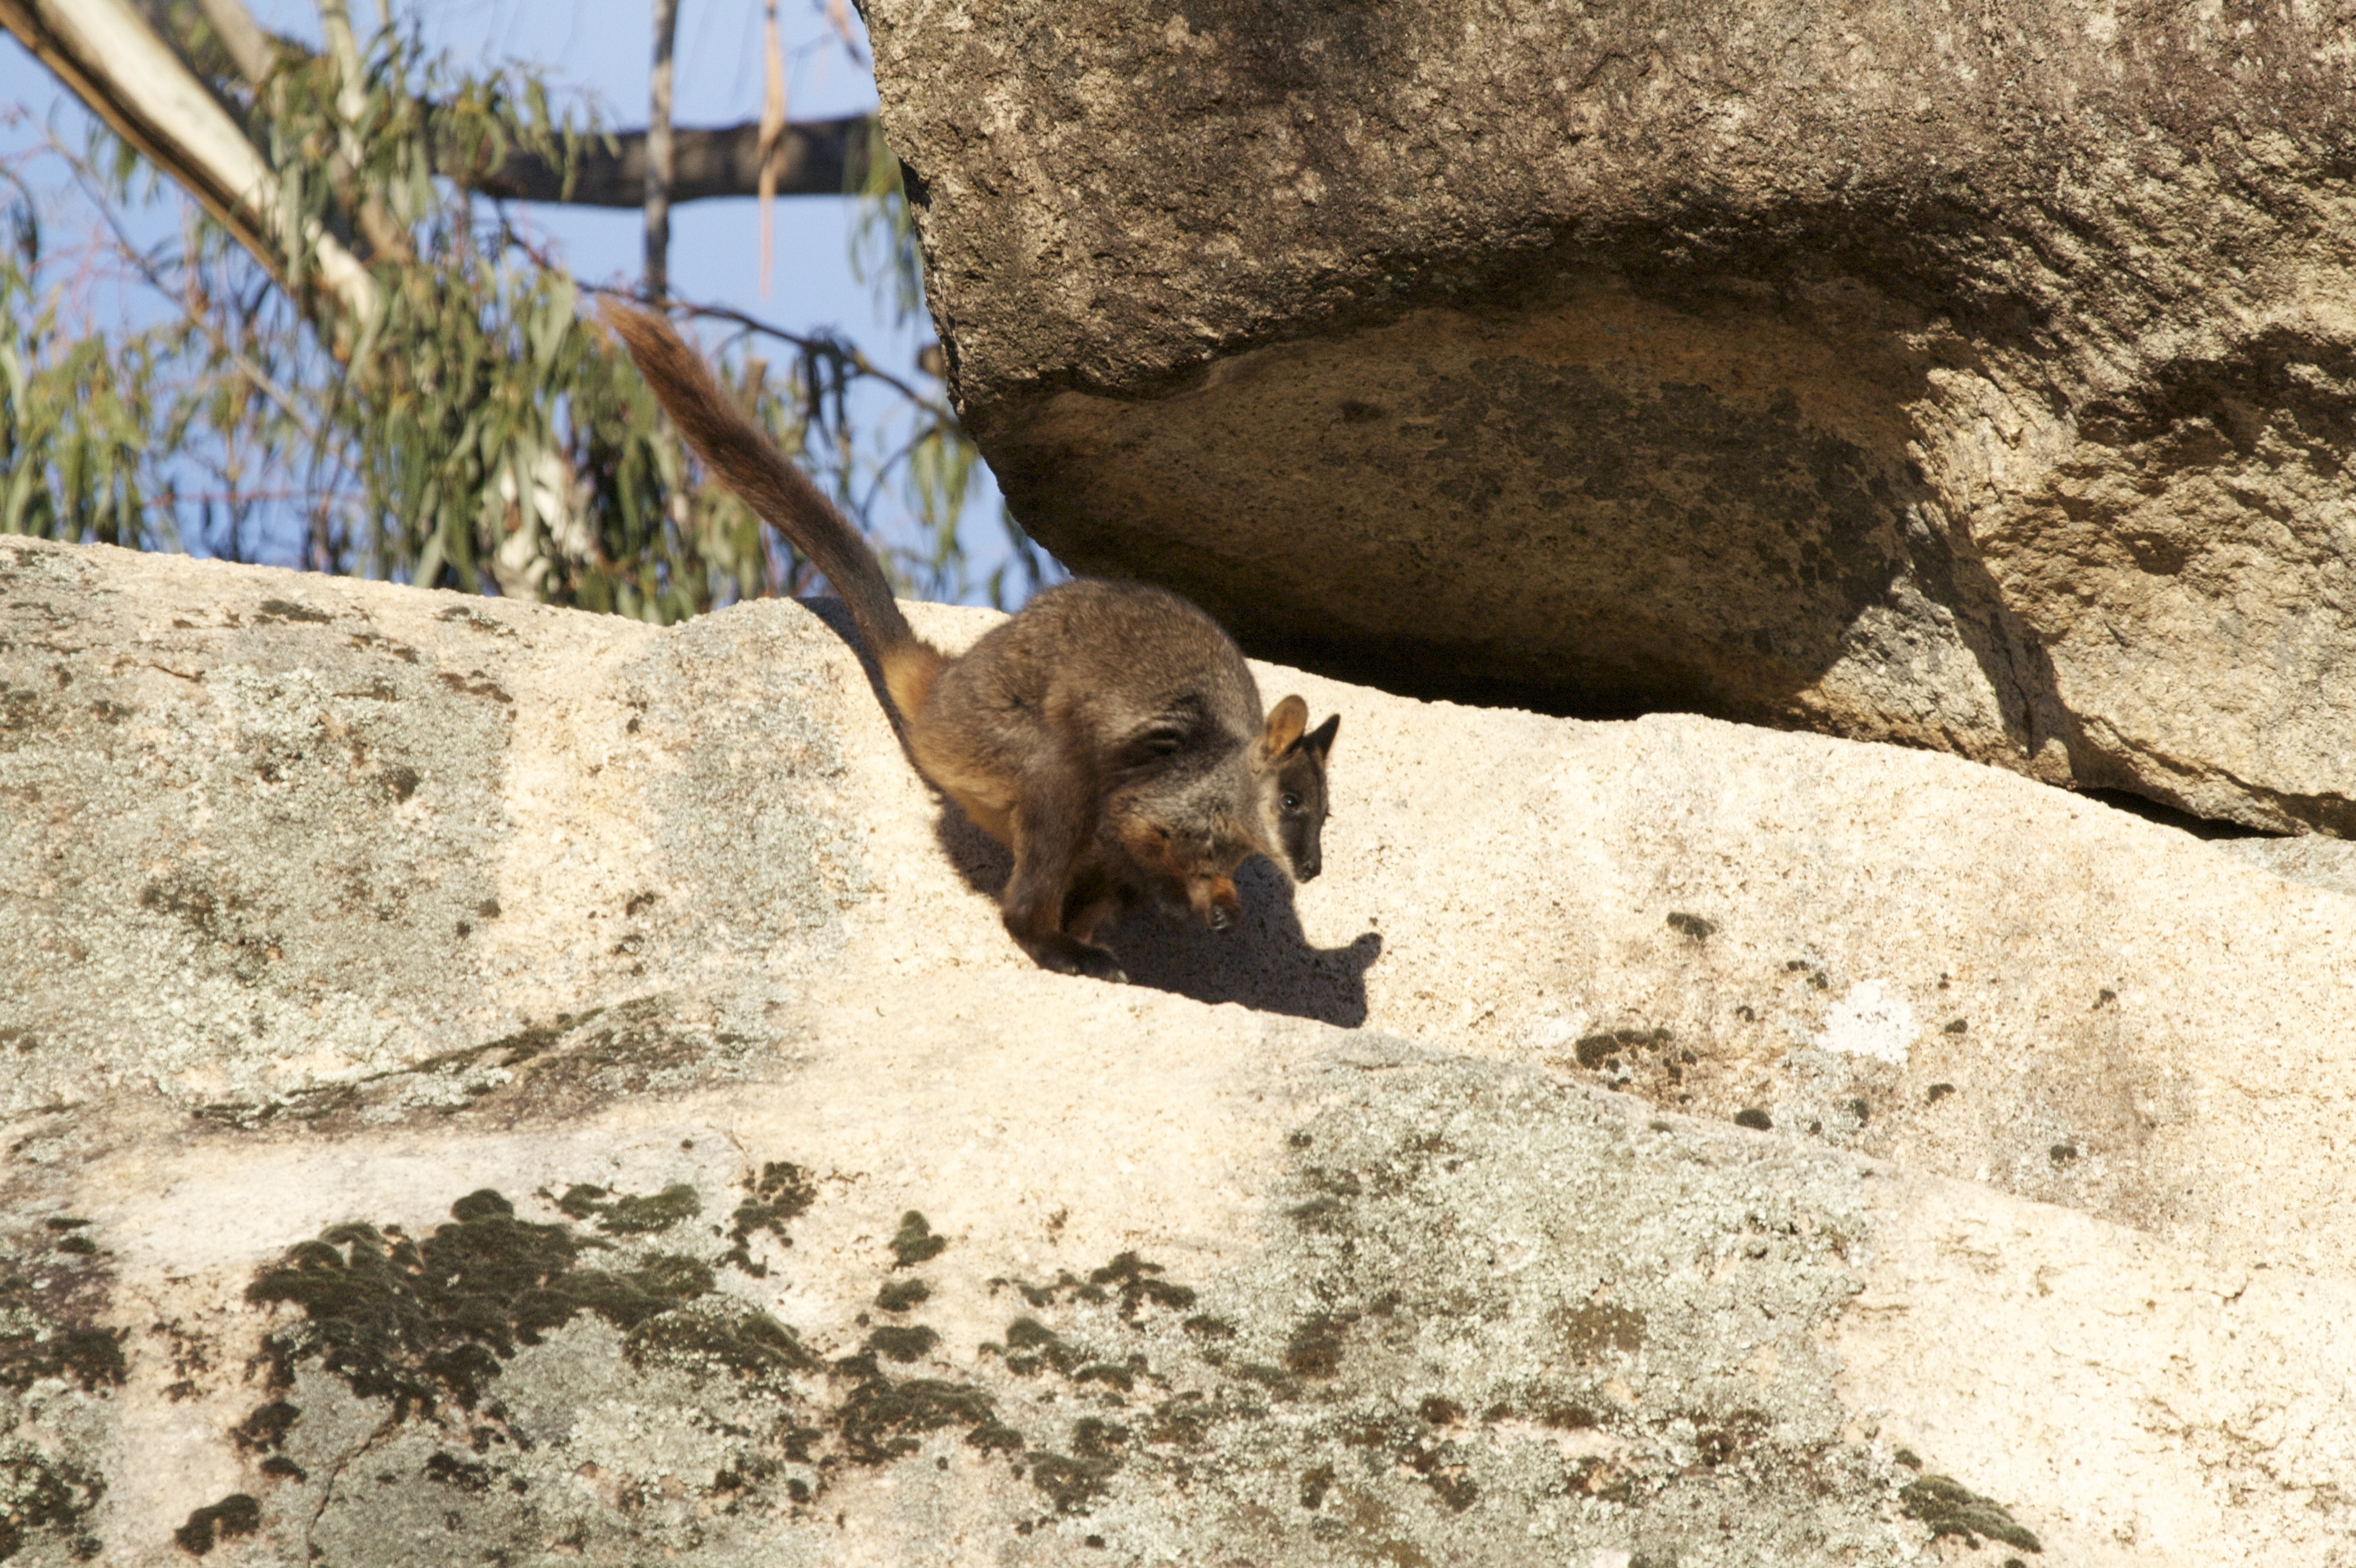 FAUNA/WWF collaboration aims to bring Rock Wallaby back to ACT